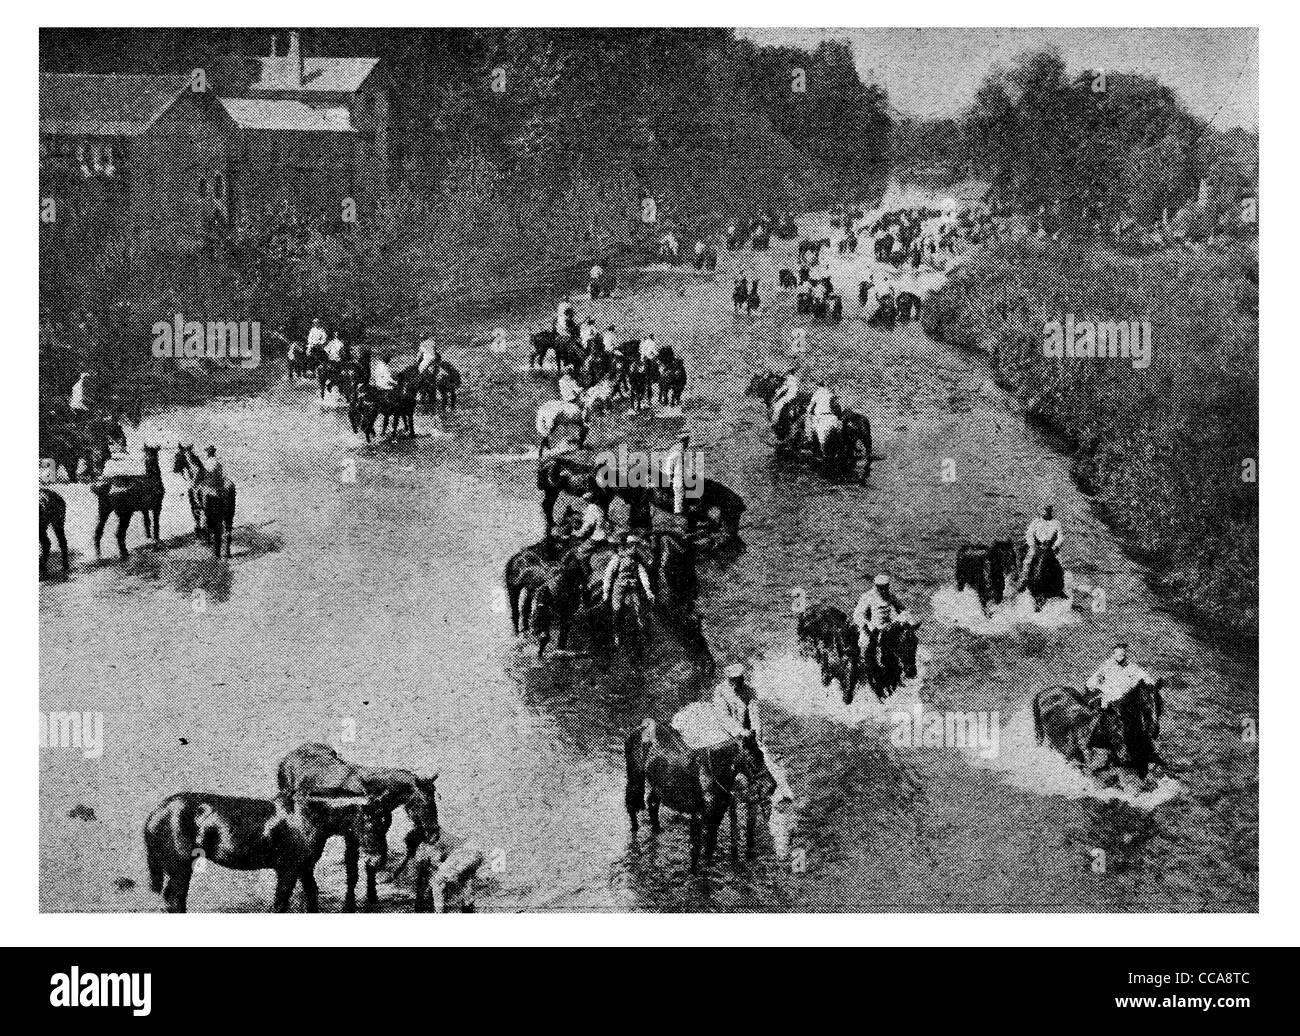 1915 German invaders France watering horses horse stream cavalry feeding rest river bank - Stock Image